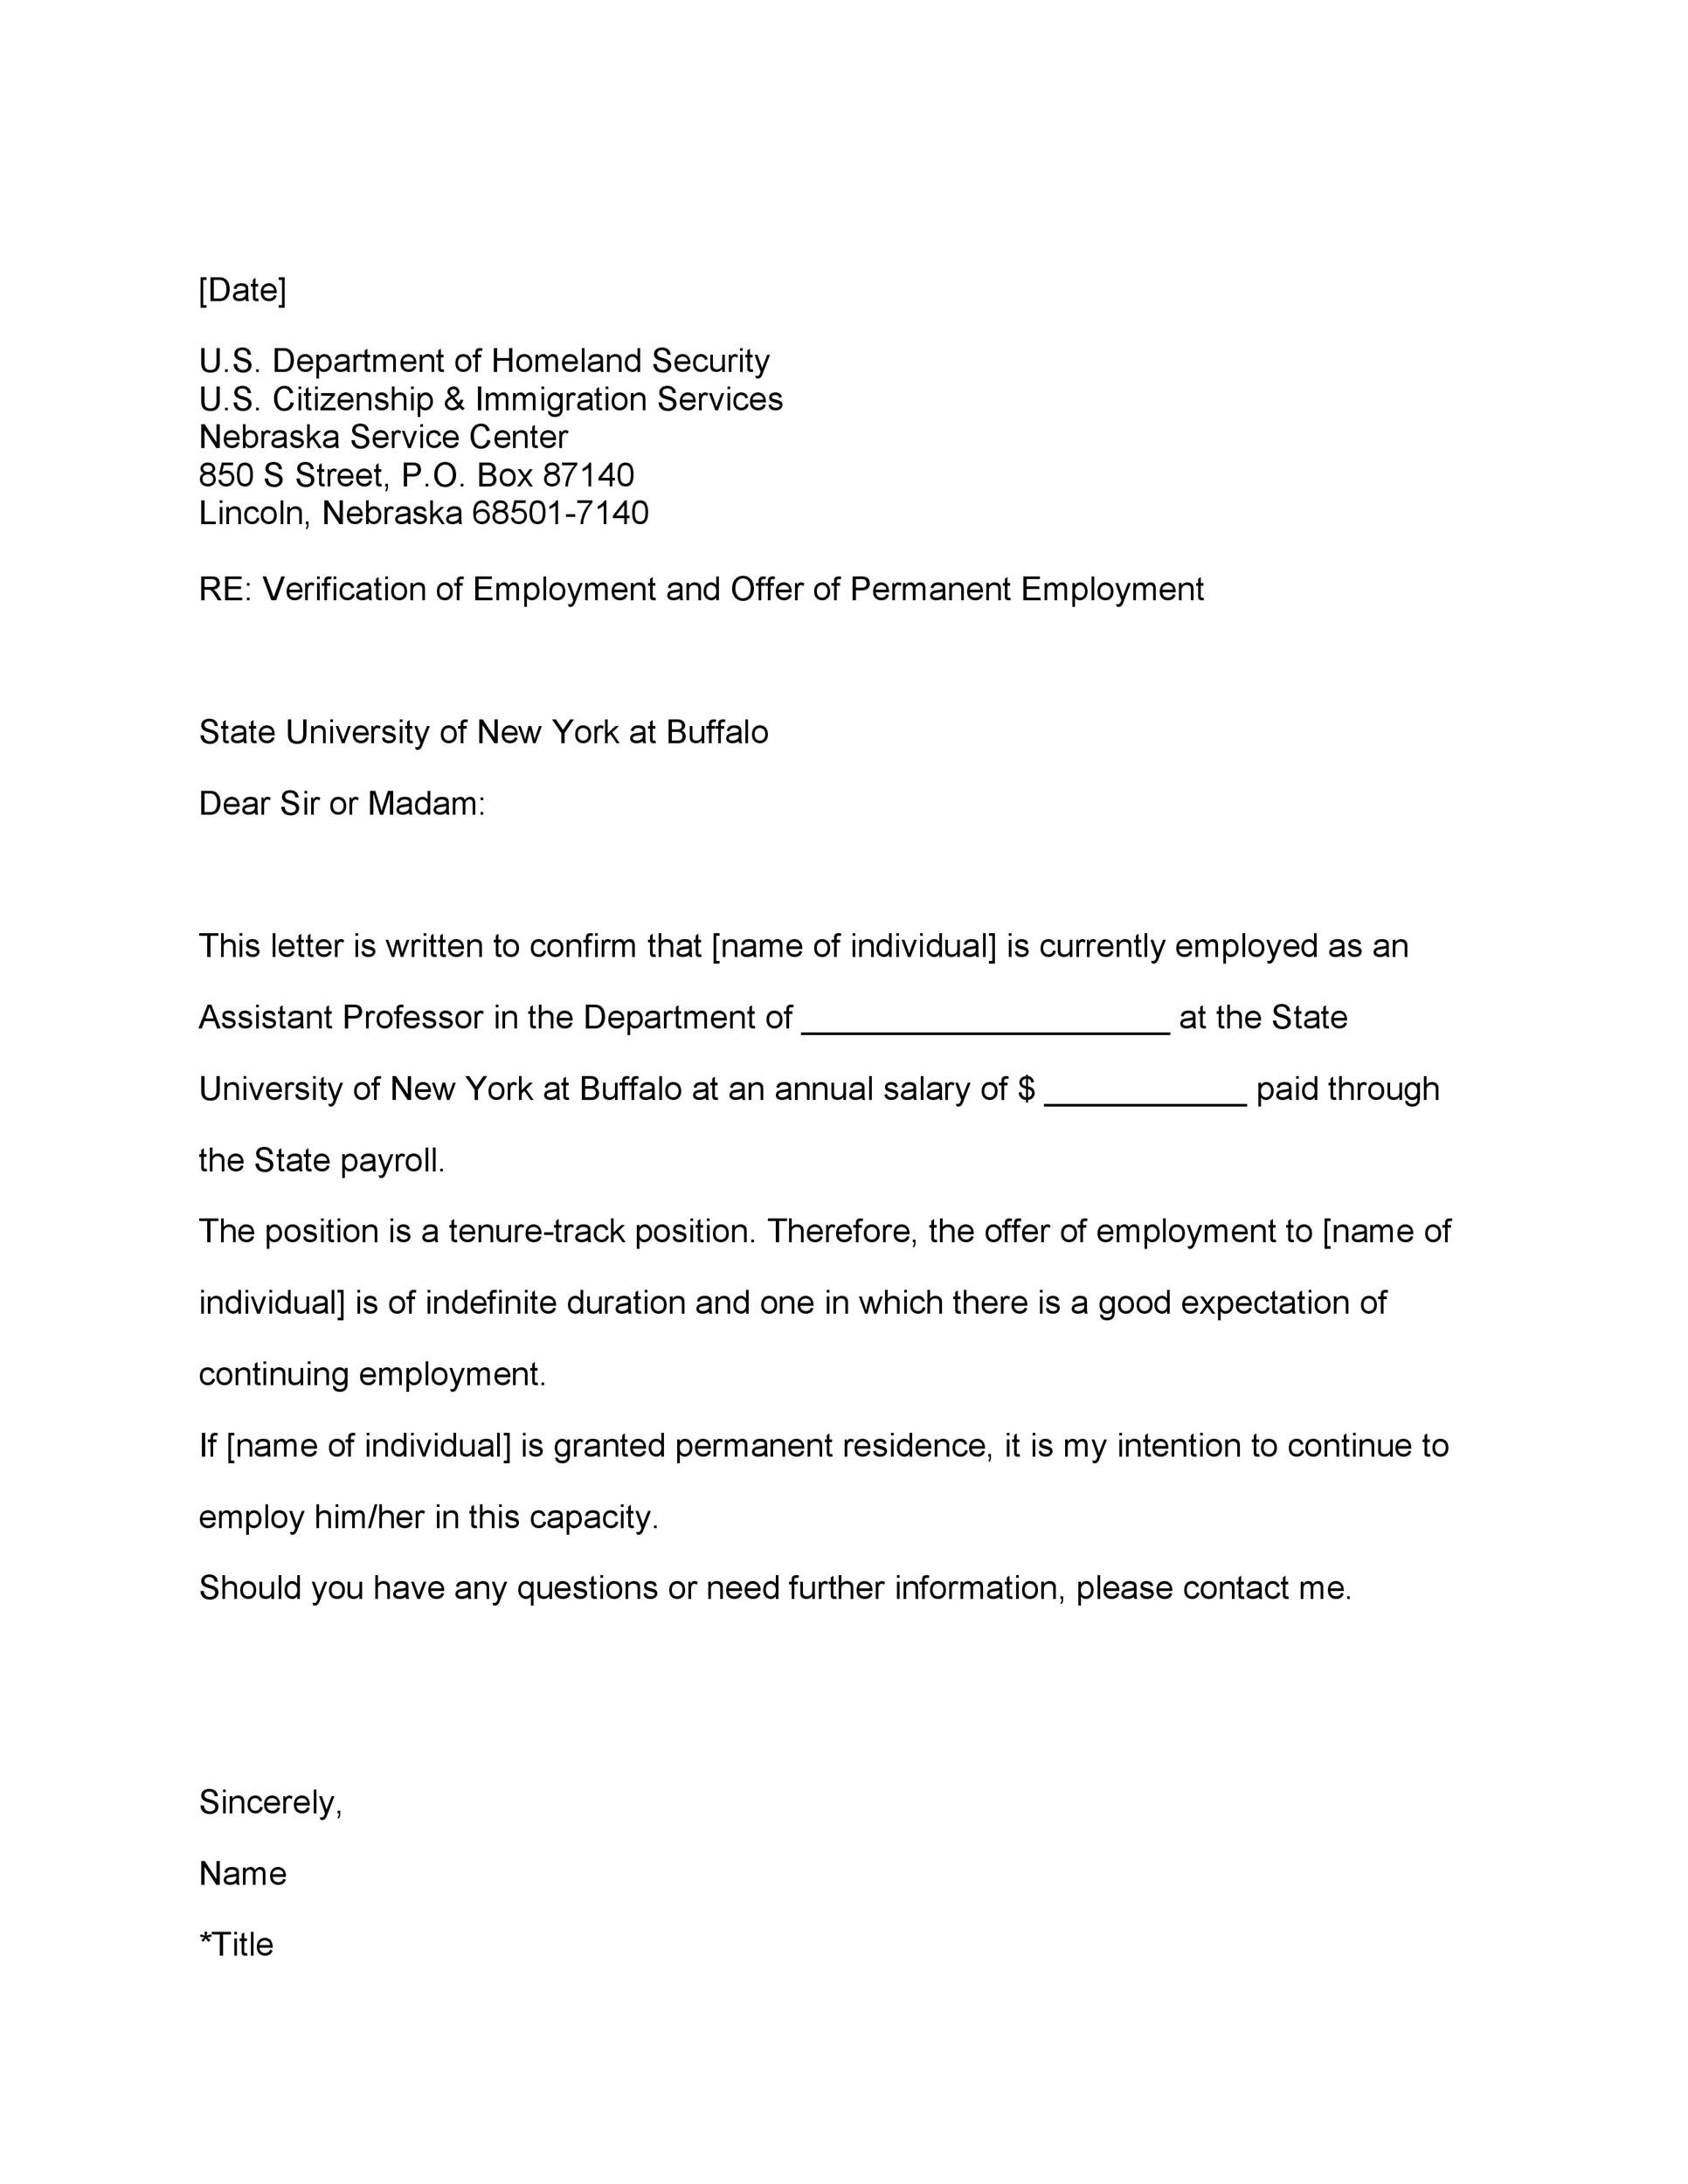 Free Proof of Employment Letter Template 31